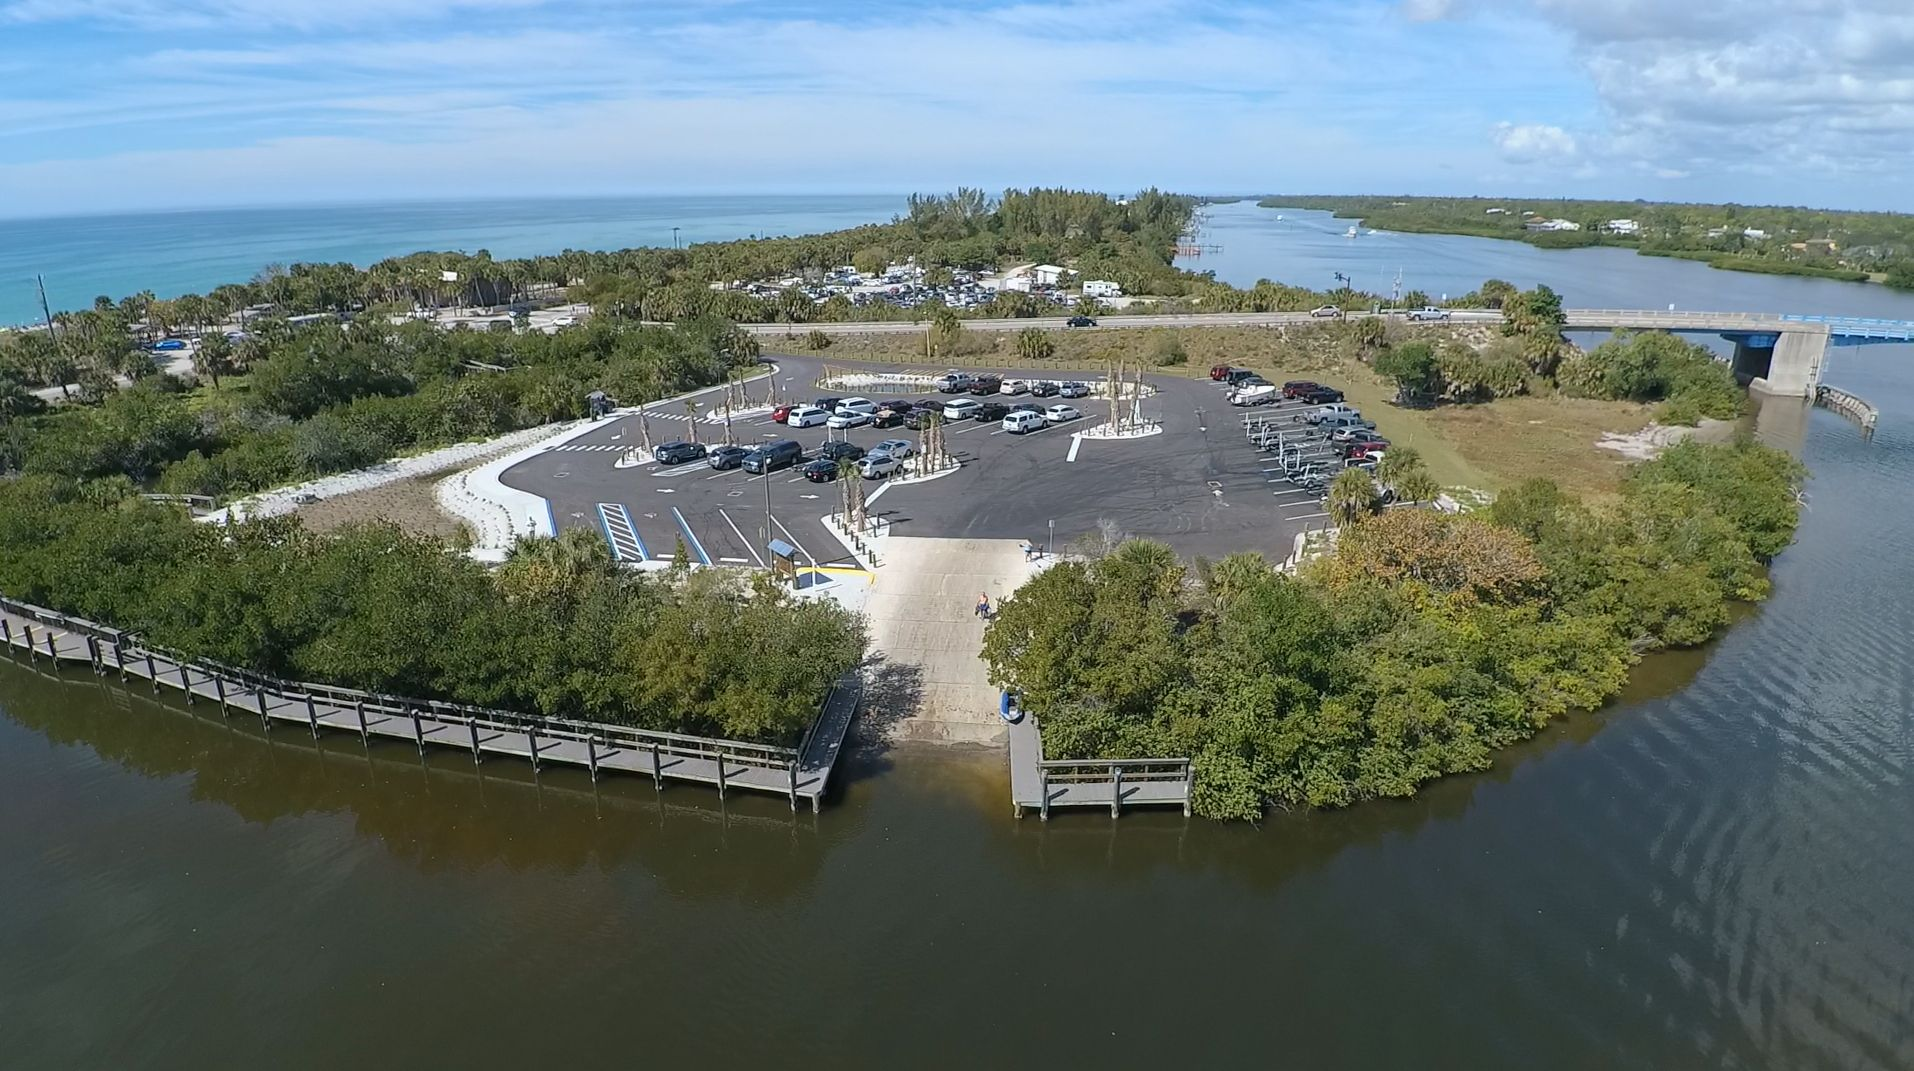 Recently upgraded parking and boat ramp at the Manasota ...